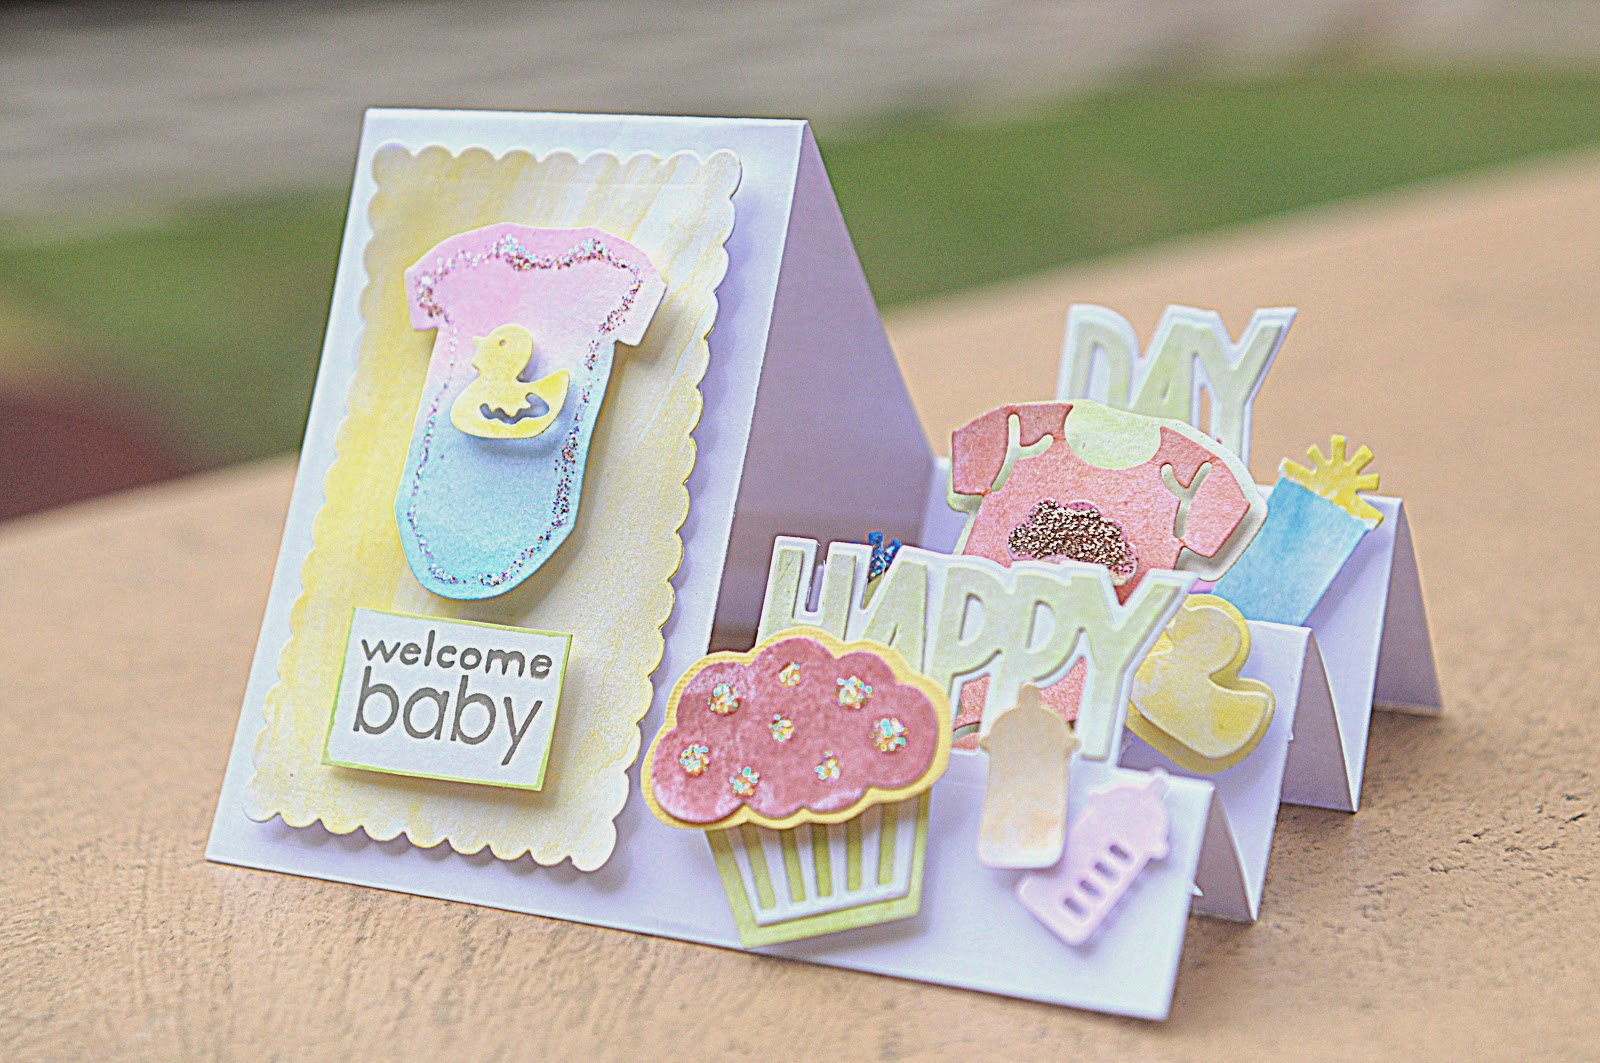 I Made A Baby Shower Card Using My Sizzix Bigshot Machine And The Latest  Sizzix Dies